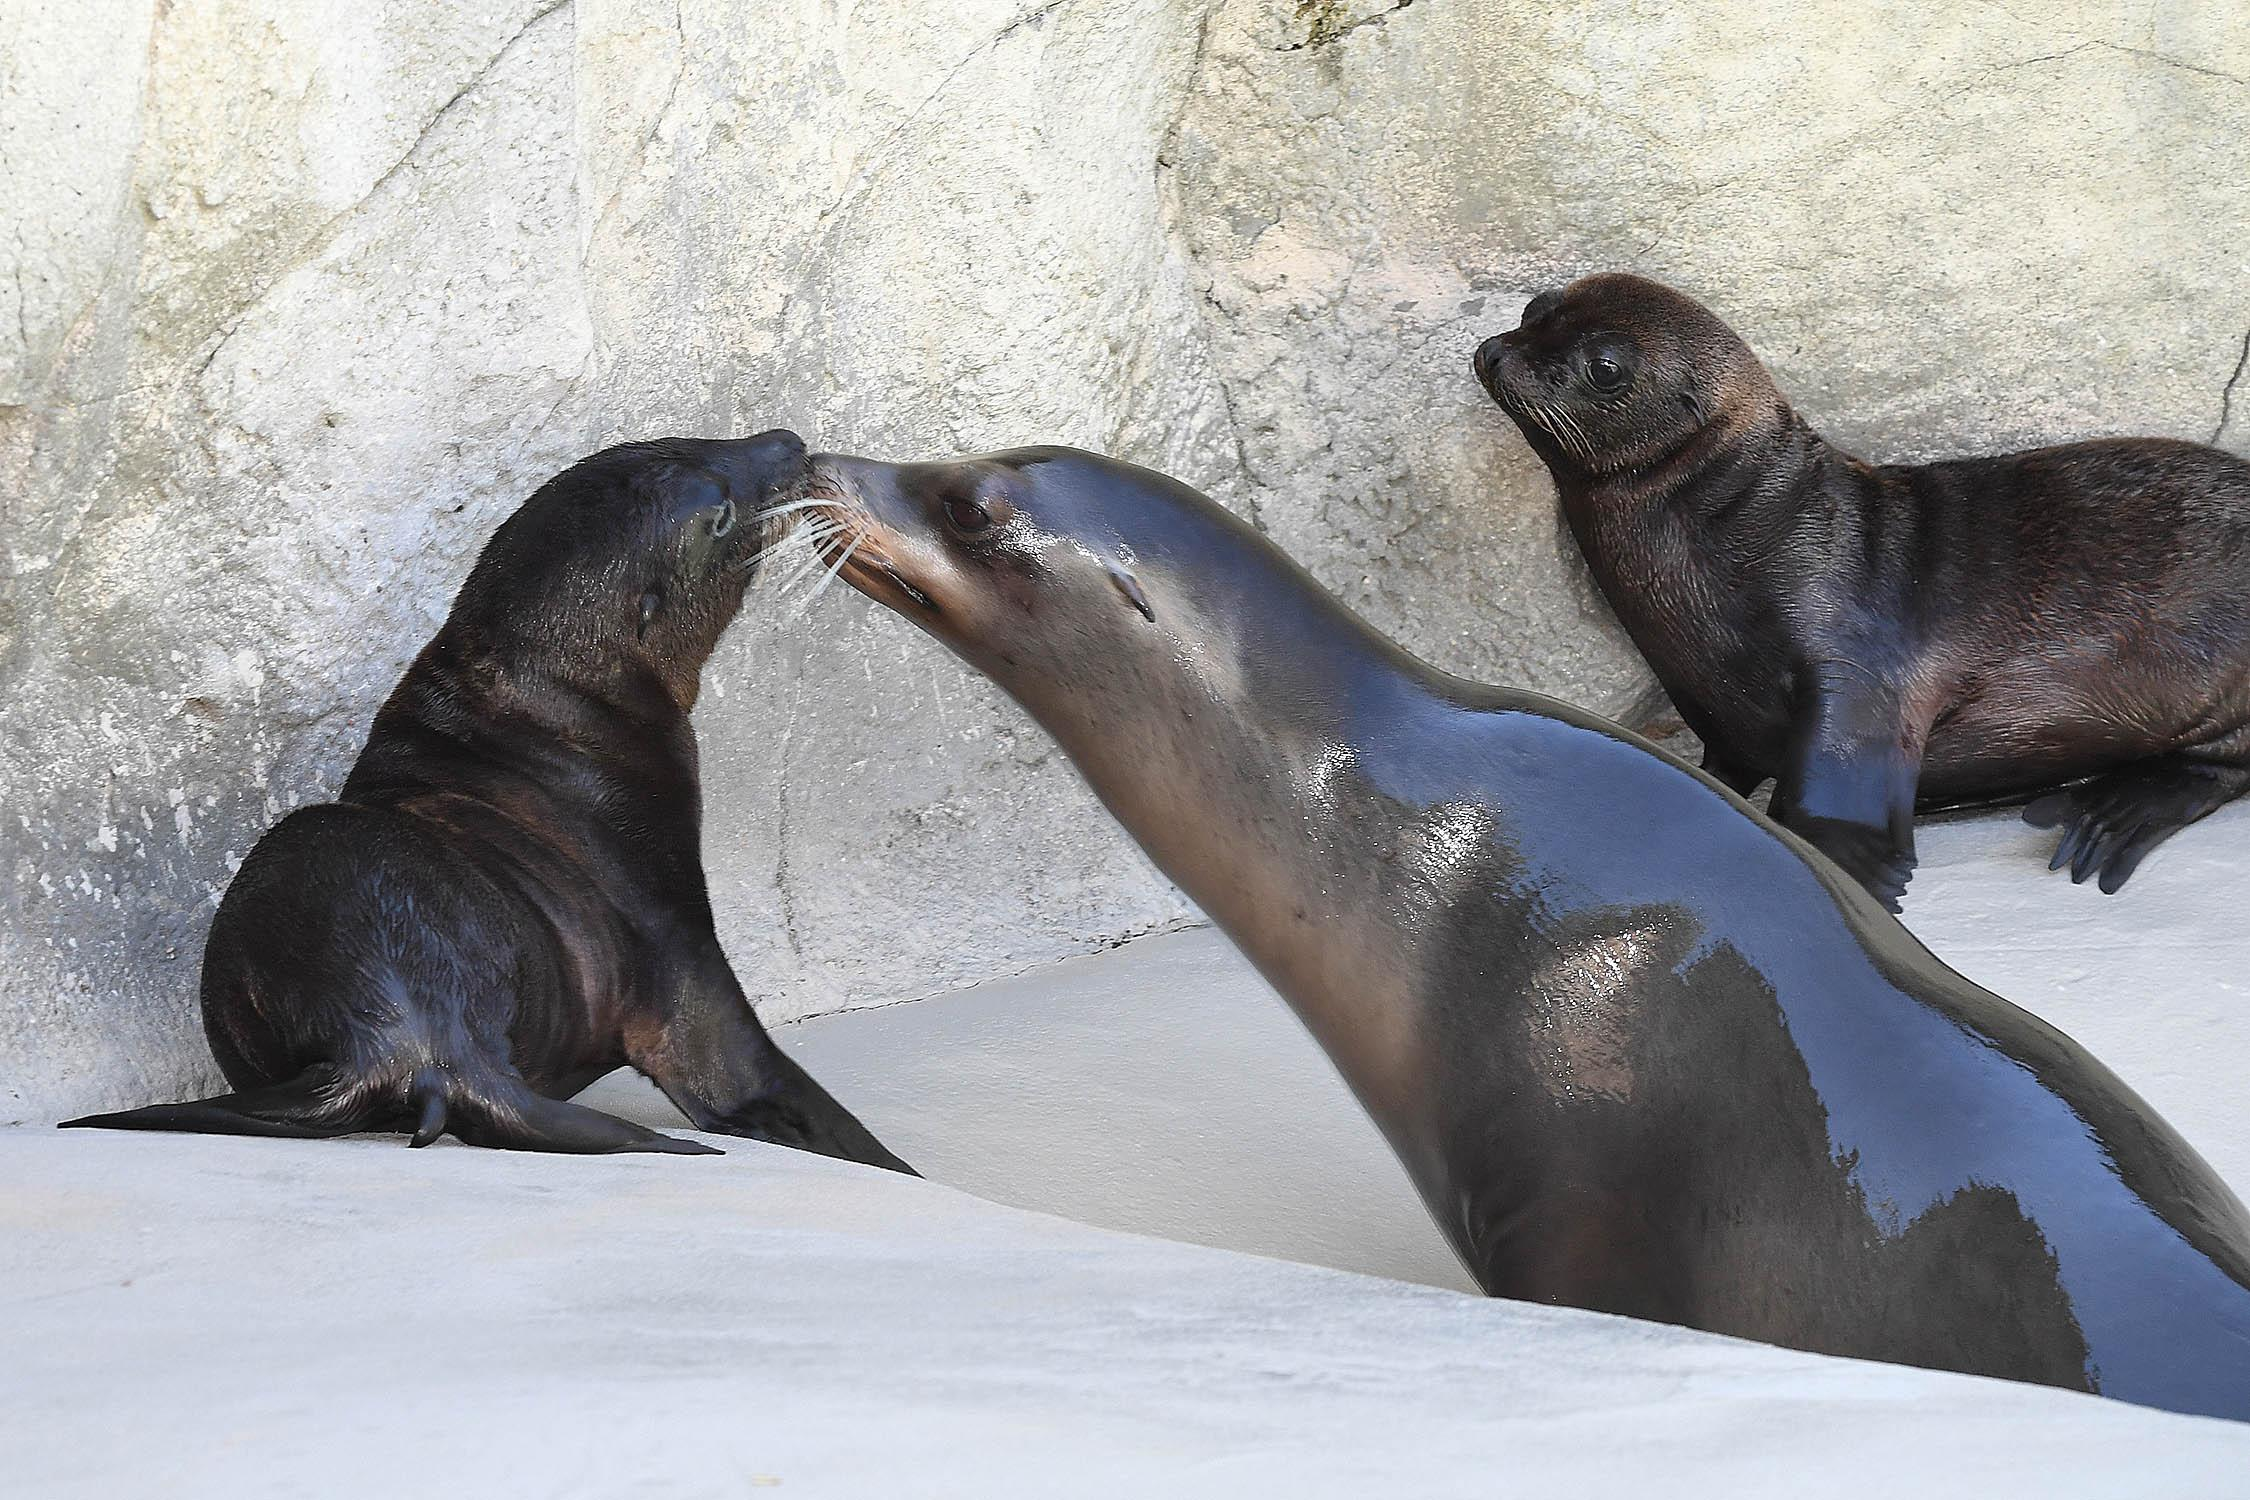 Two California sea lion pups born at Brookfield Zoo on June 4 and 11 can now be seen in their outdoor habitat at Pinniped Point. Also pictured is one of the moms, Arie. (Jim Schulz / Chicago Zoological Society)